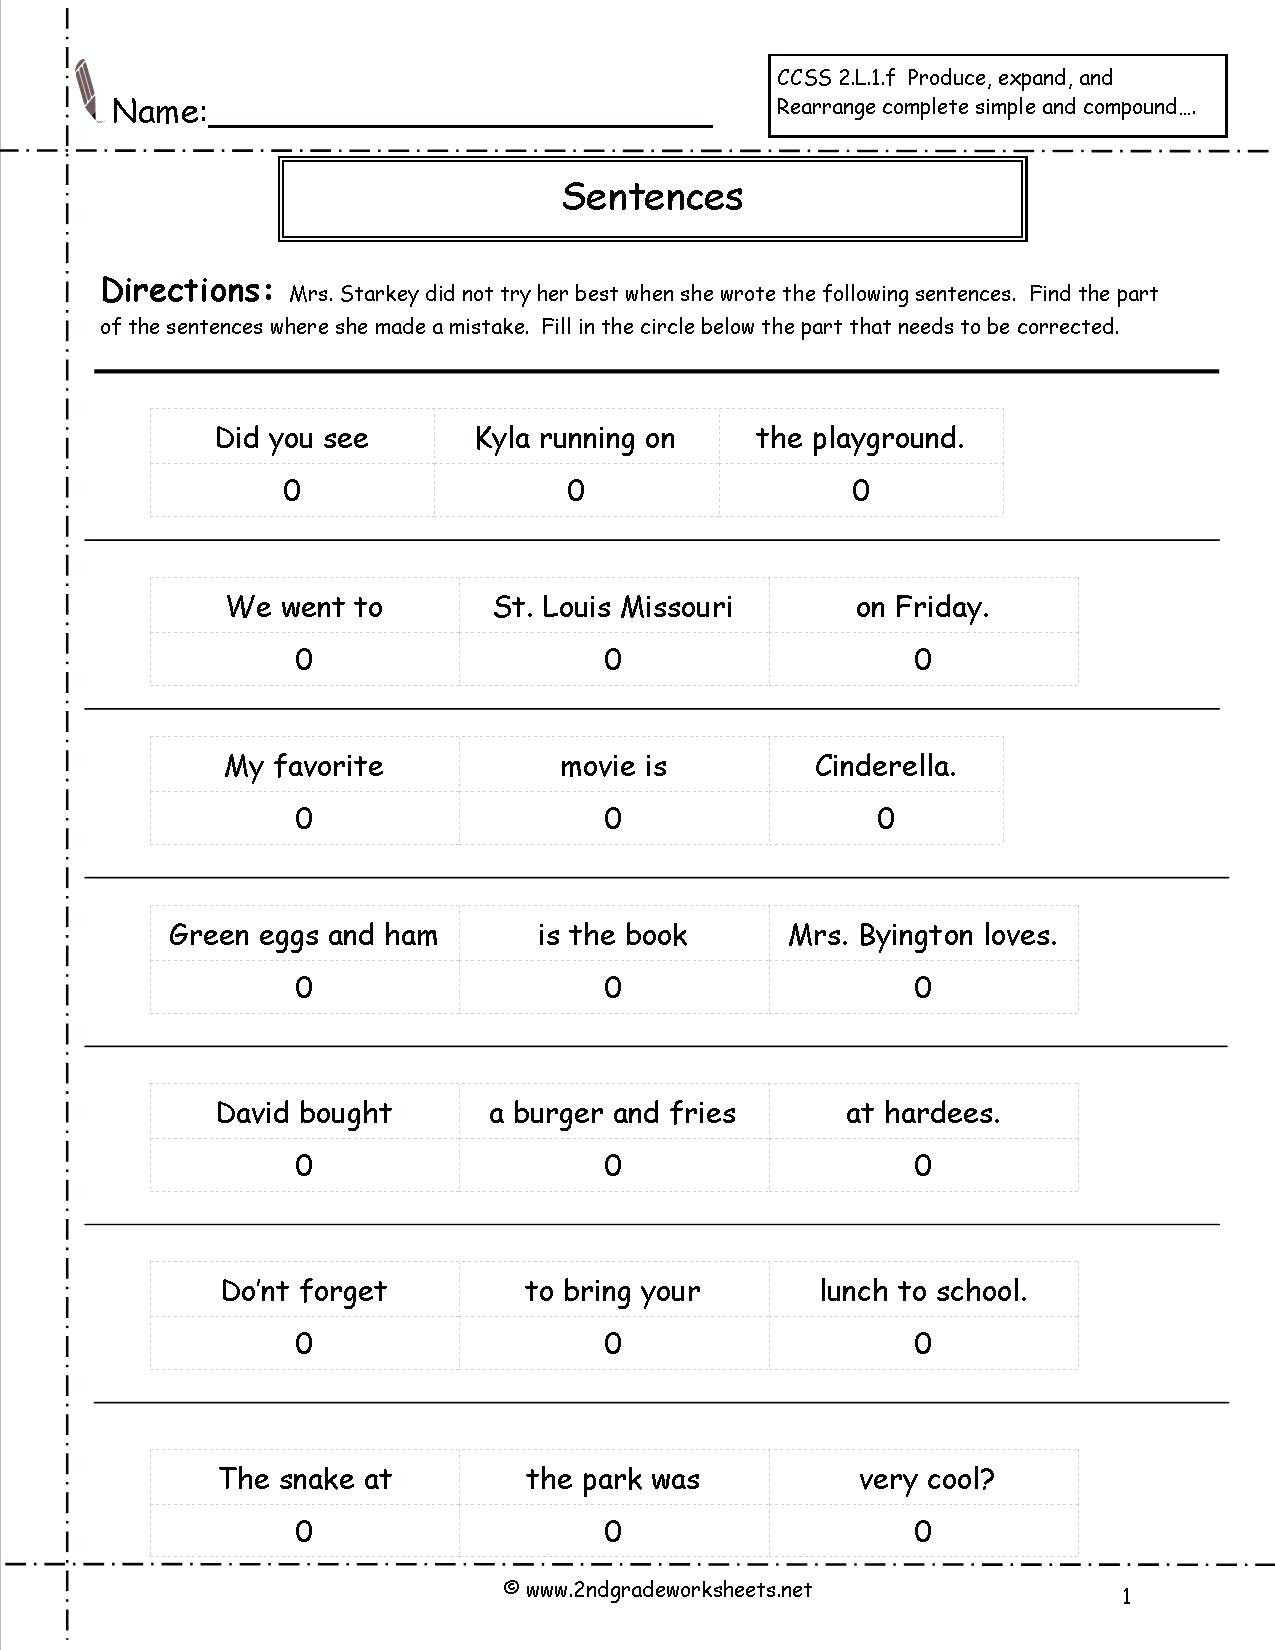 Complete Sentences Worksheets 2nd Grade Types Sentences Worksheets to Download Types Of